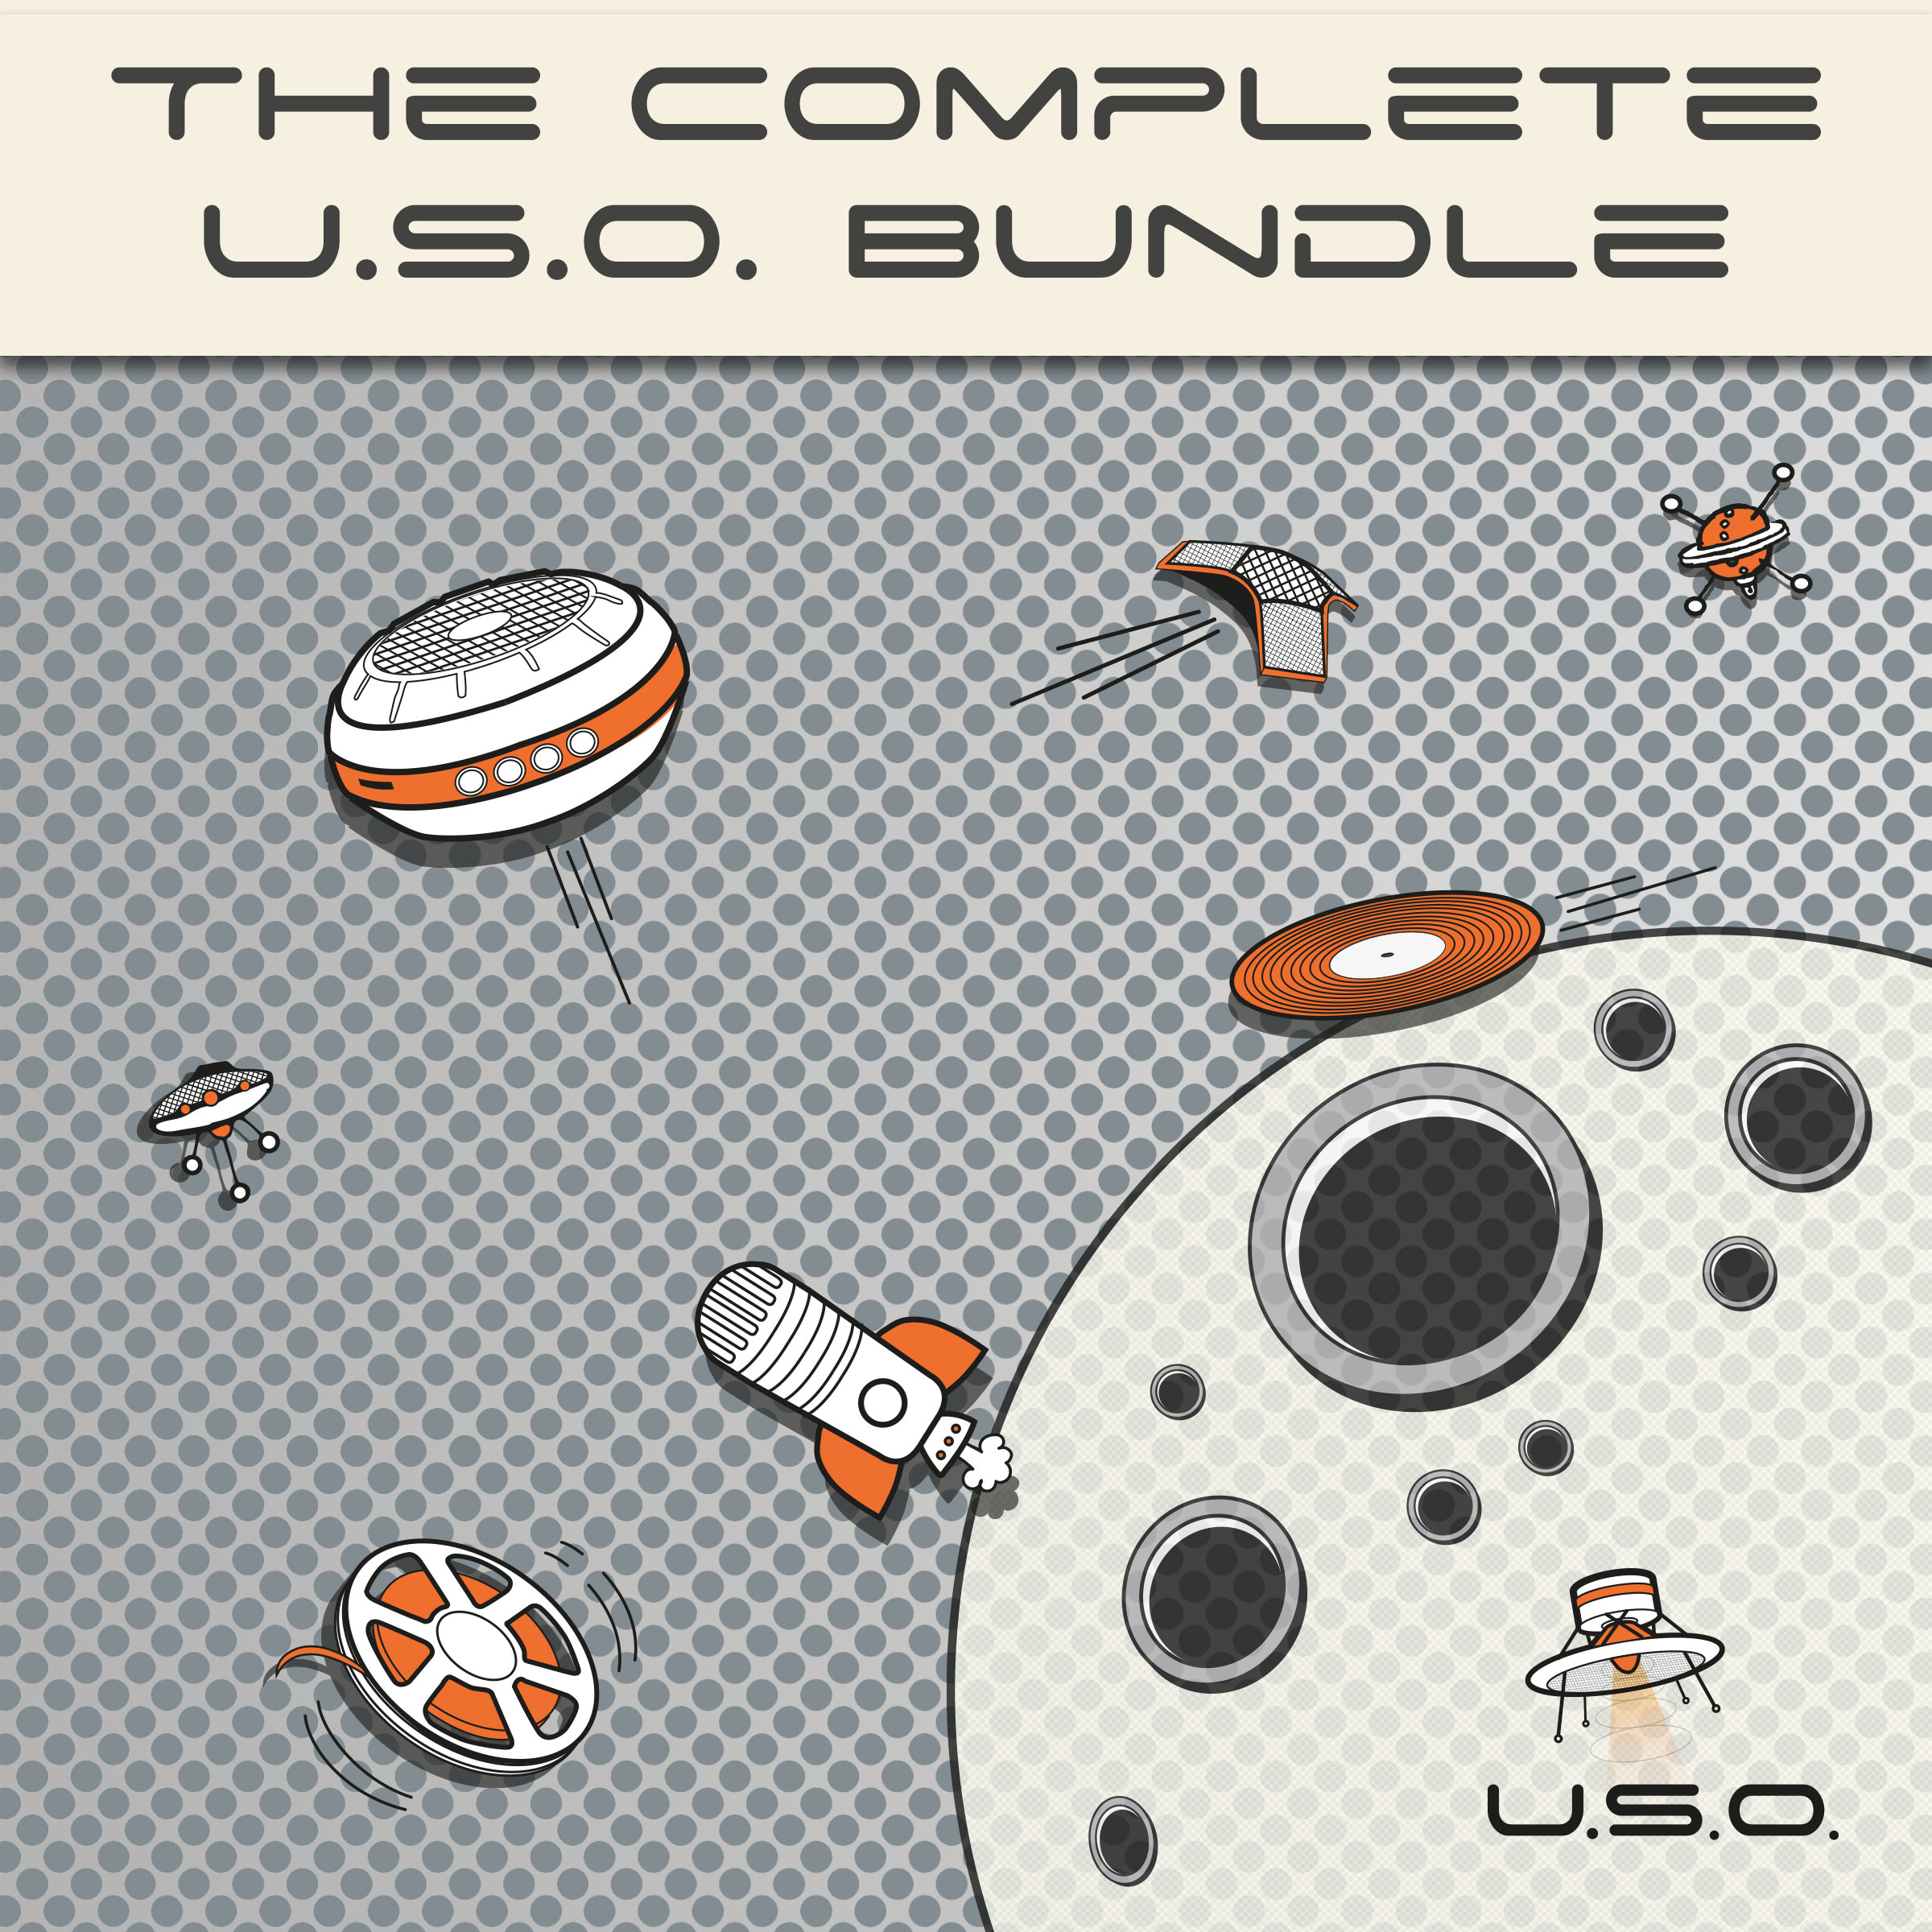 The Complete U.S.O. Bundle